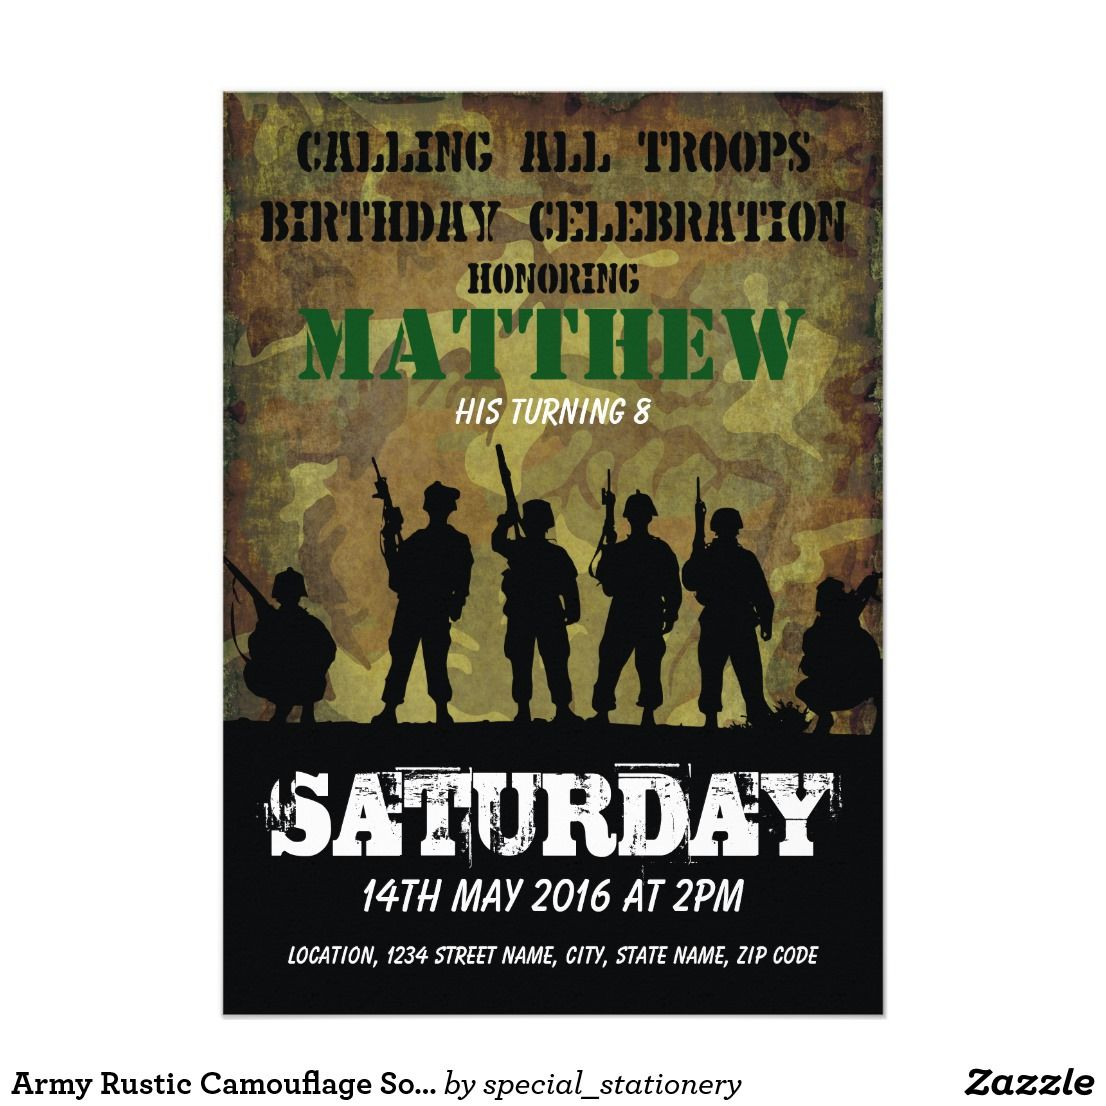 Army rustic camouflage soldiers kids birthday card kids birthday army rustic camouflage soldiers kids birthday card bookmarktalkfo Choice Image